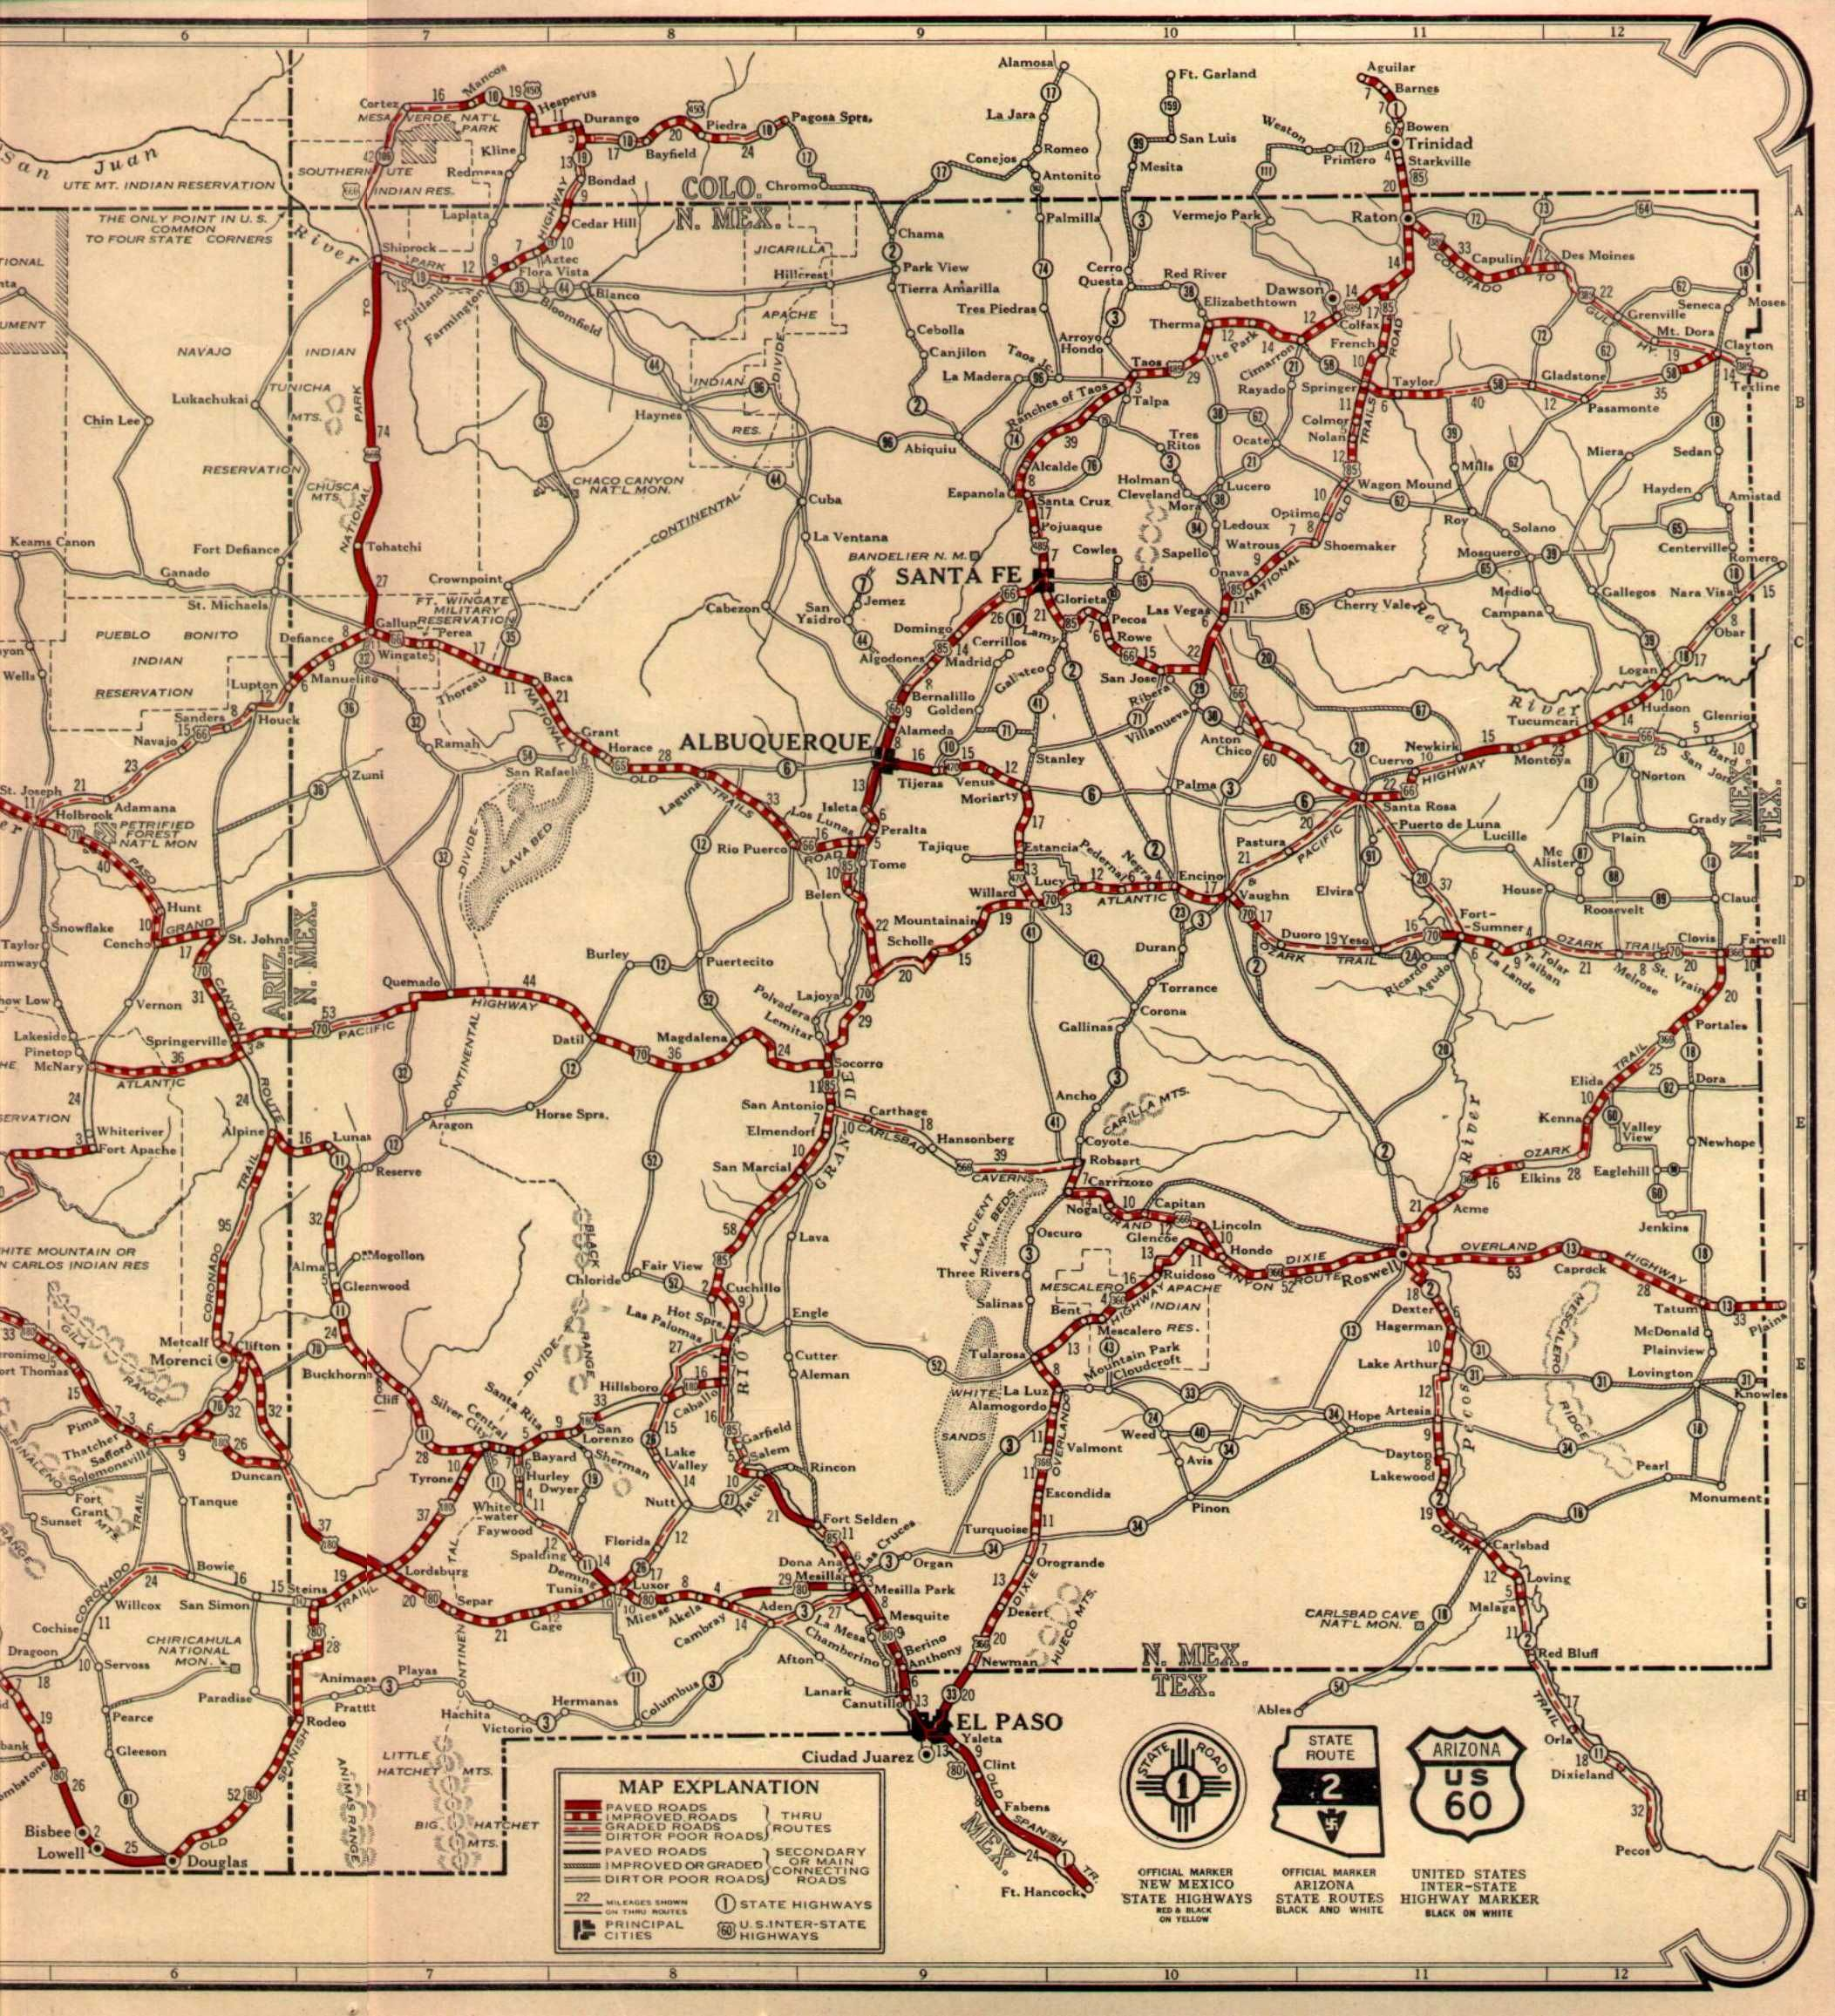 Route 66 on 1926 AZNM map Maps Pinterest Route 66 Road trips